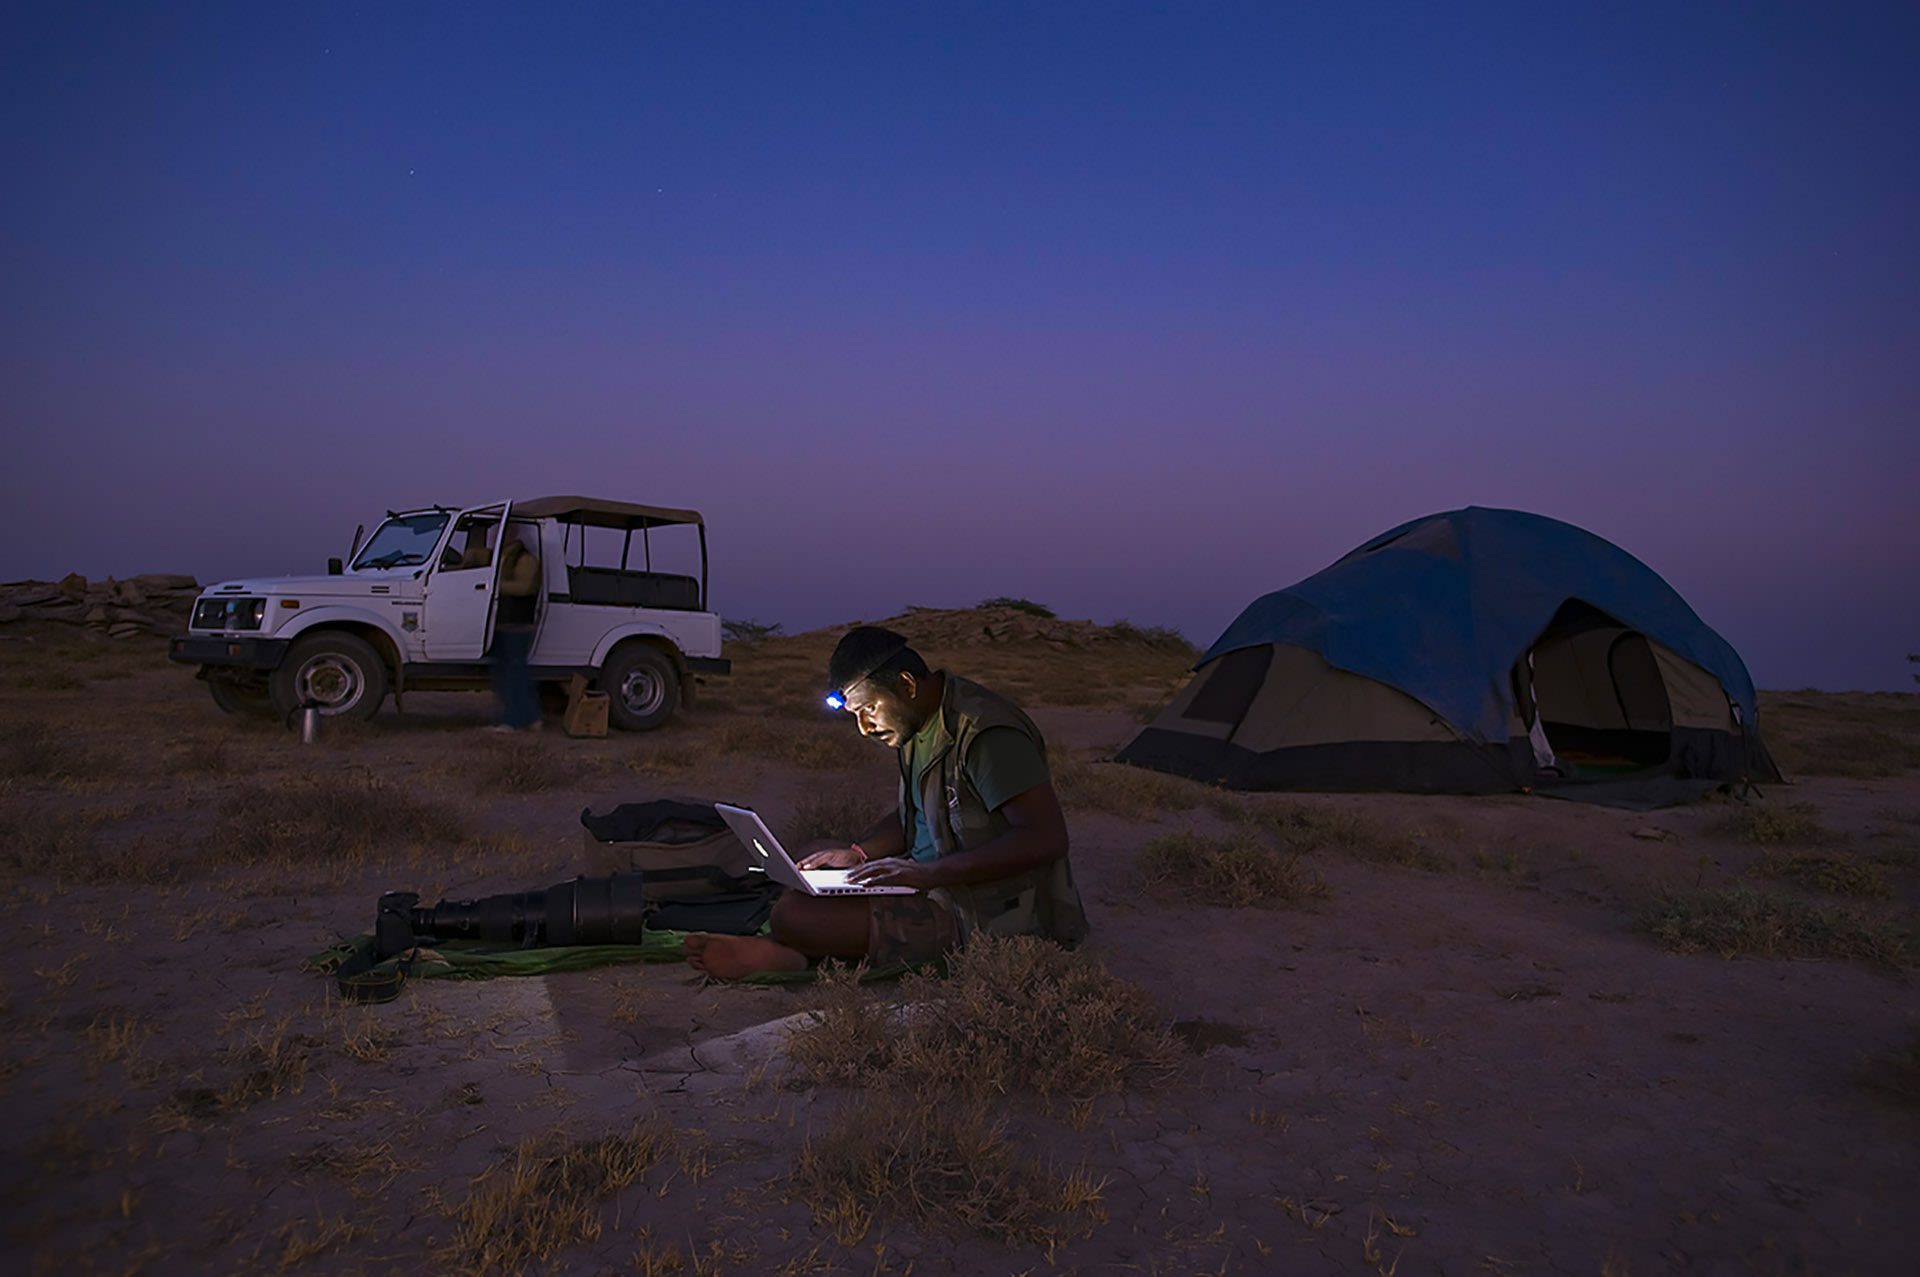 Dhritiman at the Rann of Kutch waiting to shoot a meteor shower